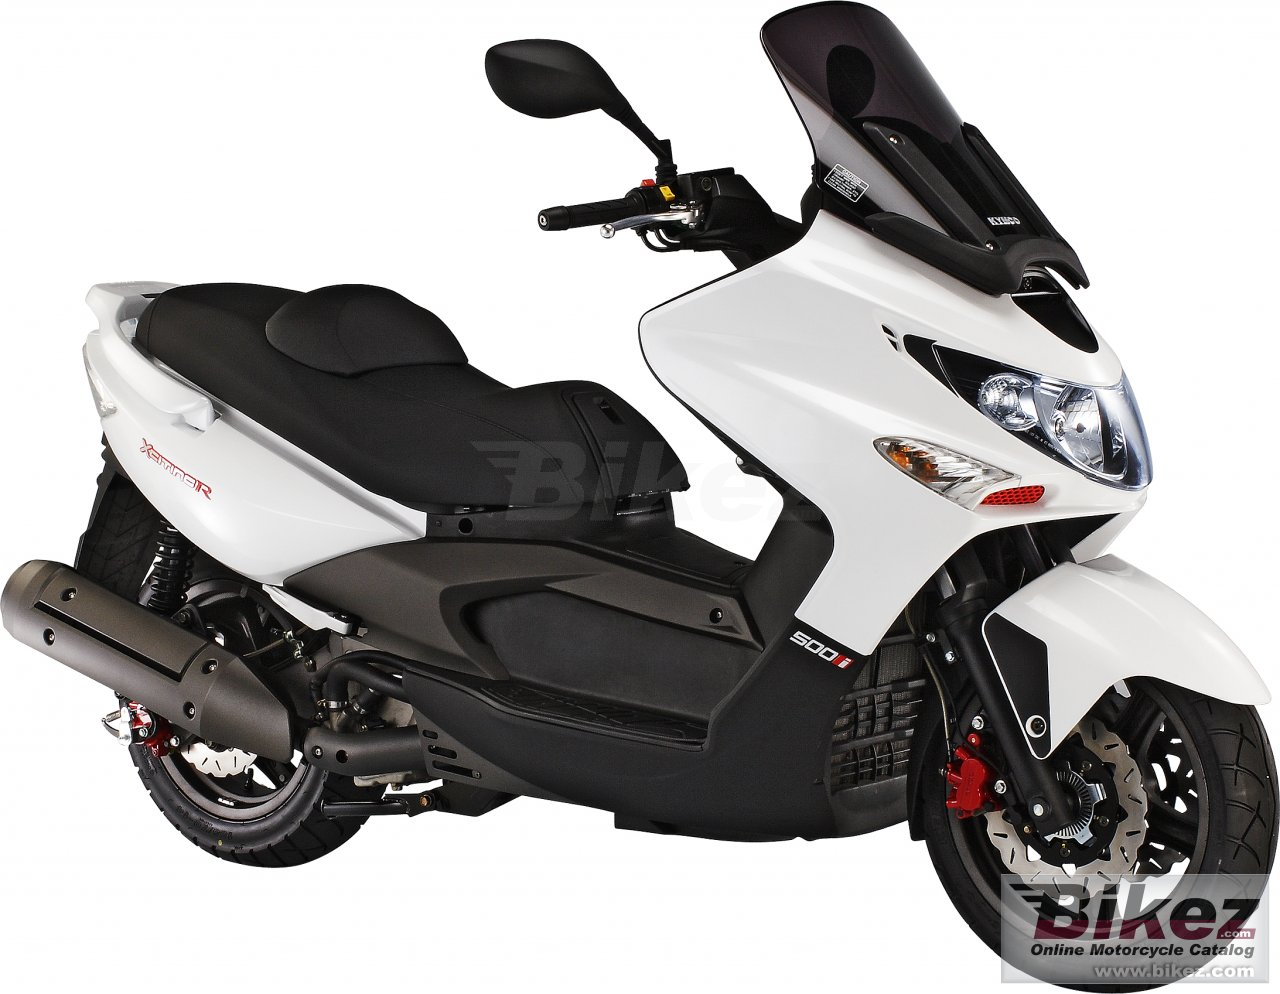 Big Kymco xciting 500ri picture and wallpaper from Bikez.com